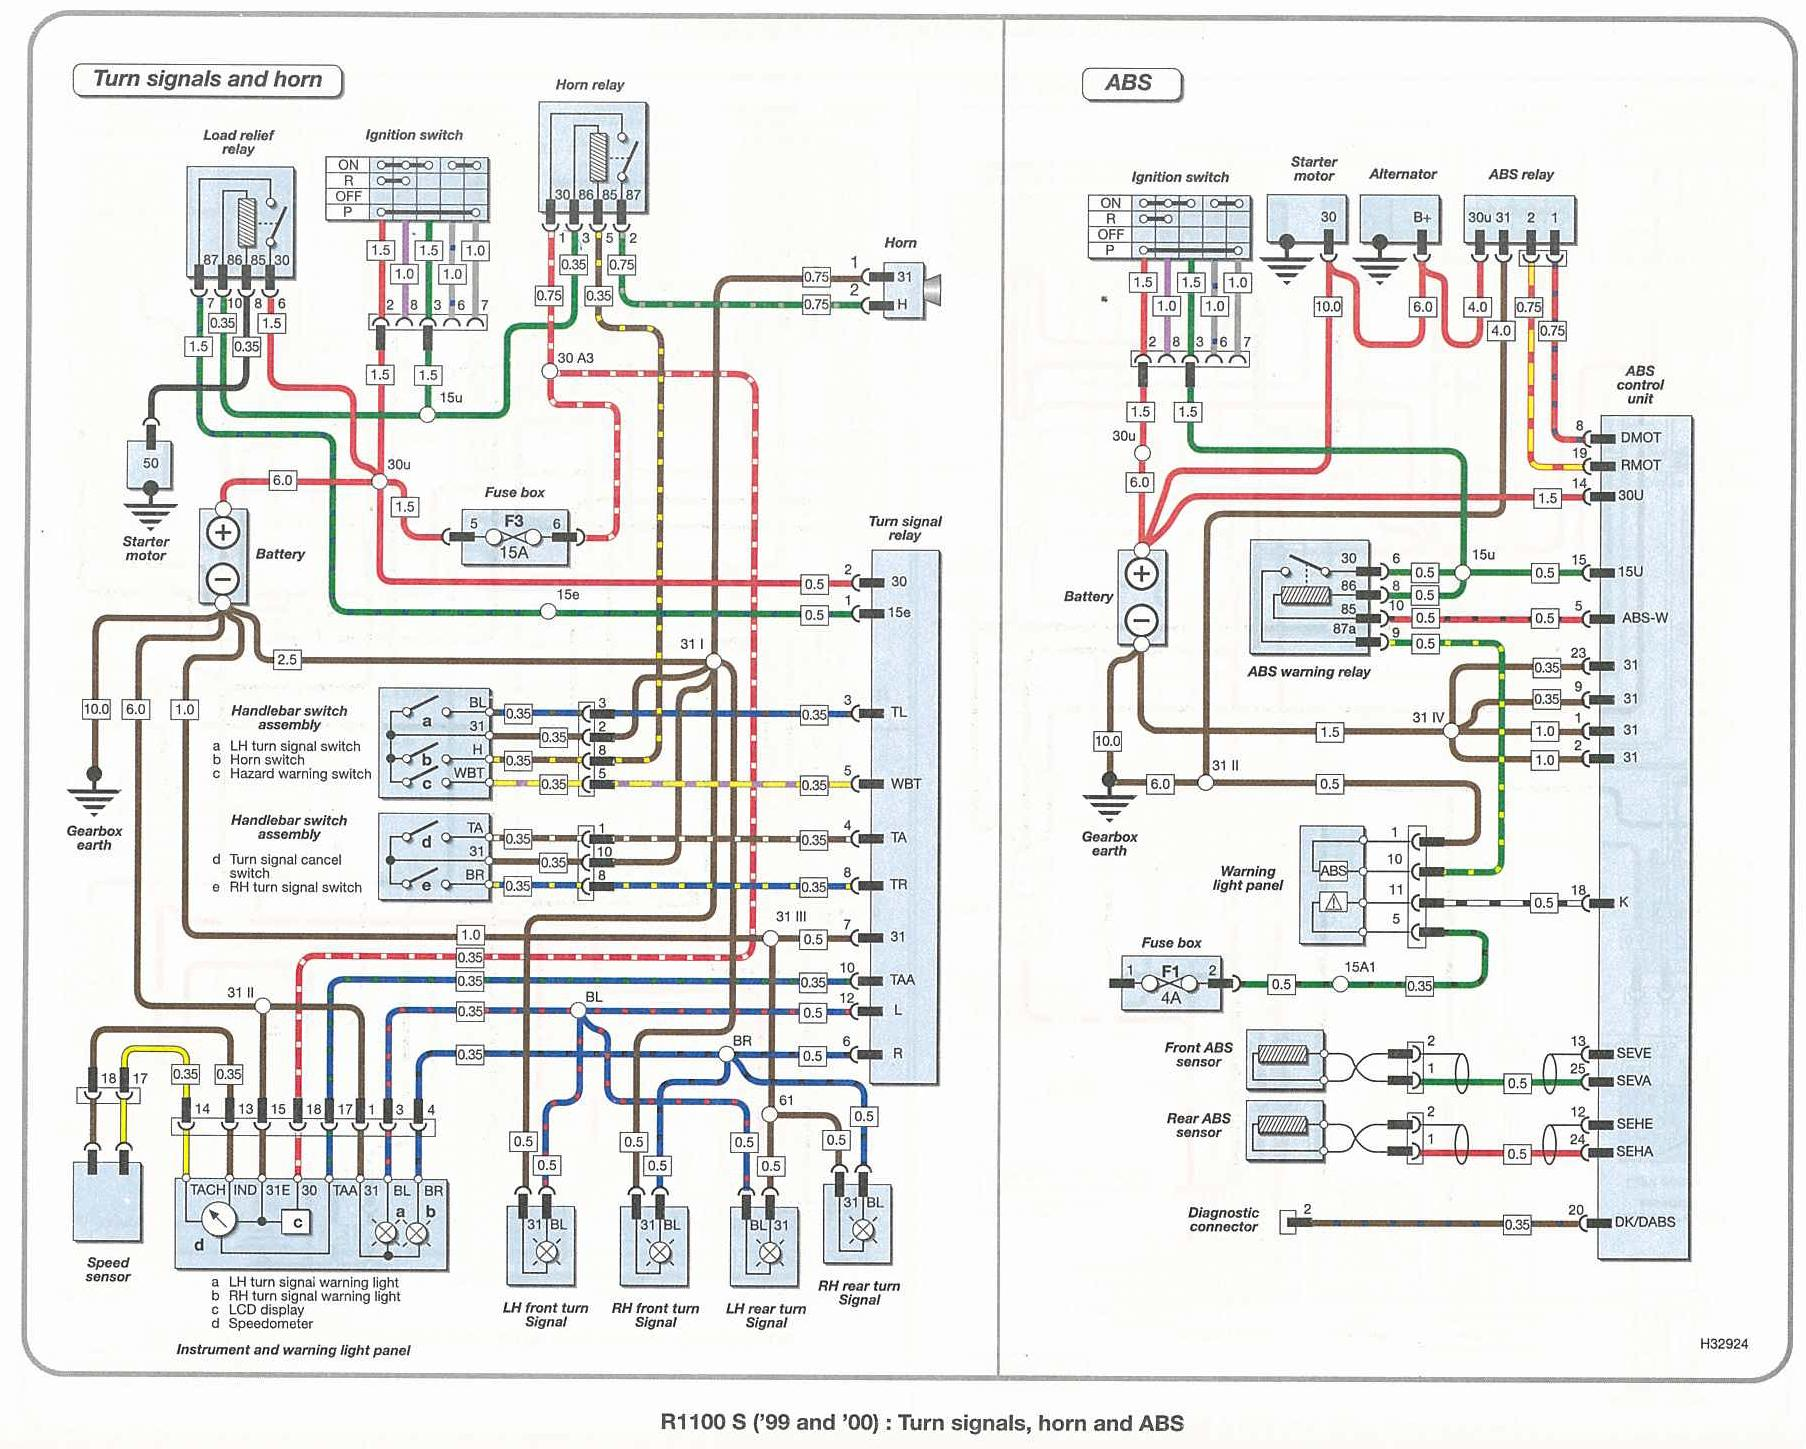 wiring03 bmw wiring diagram bmw wiring diagrams e39 \u2022 wiring diagrams j E46 Wiring Diagram PDF at virtualis.co